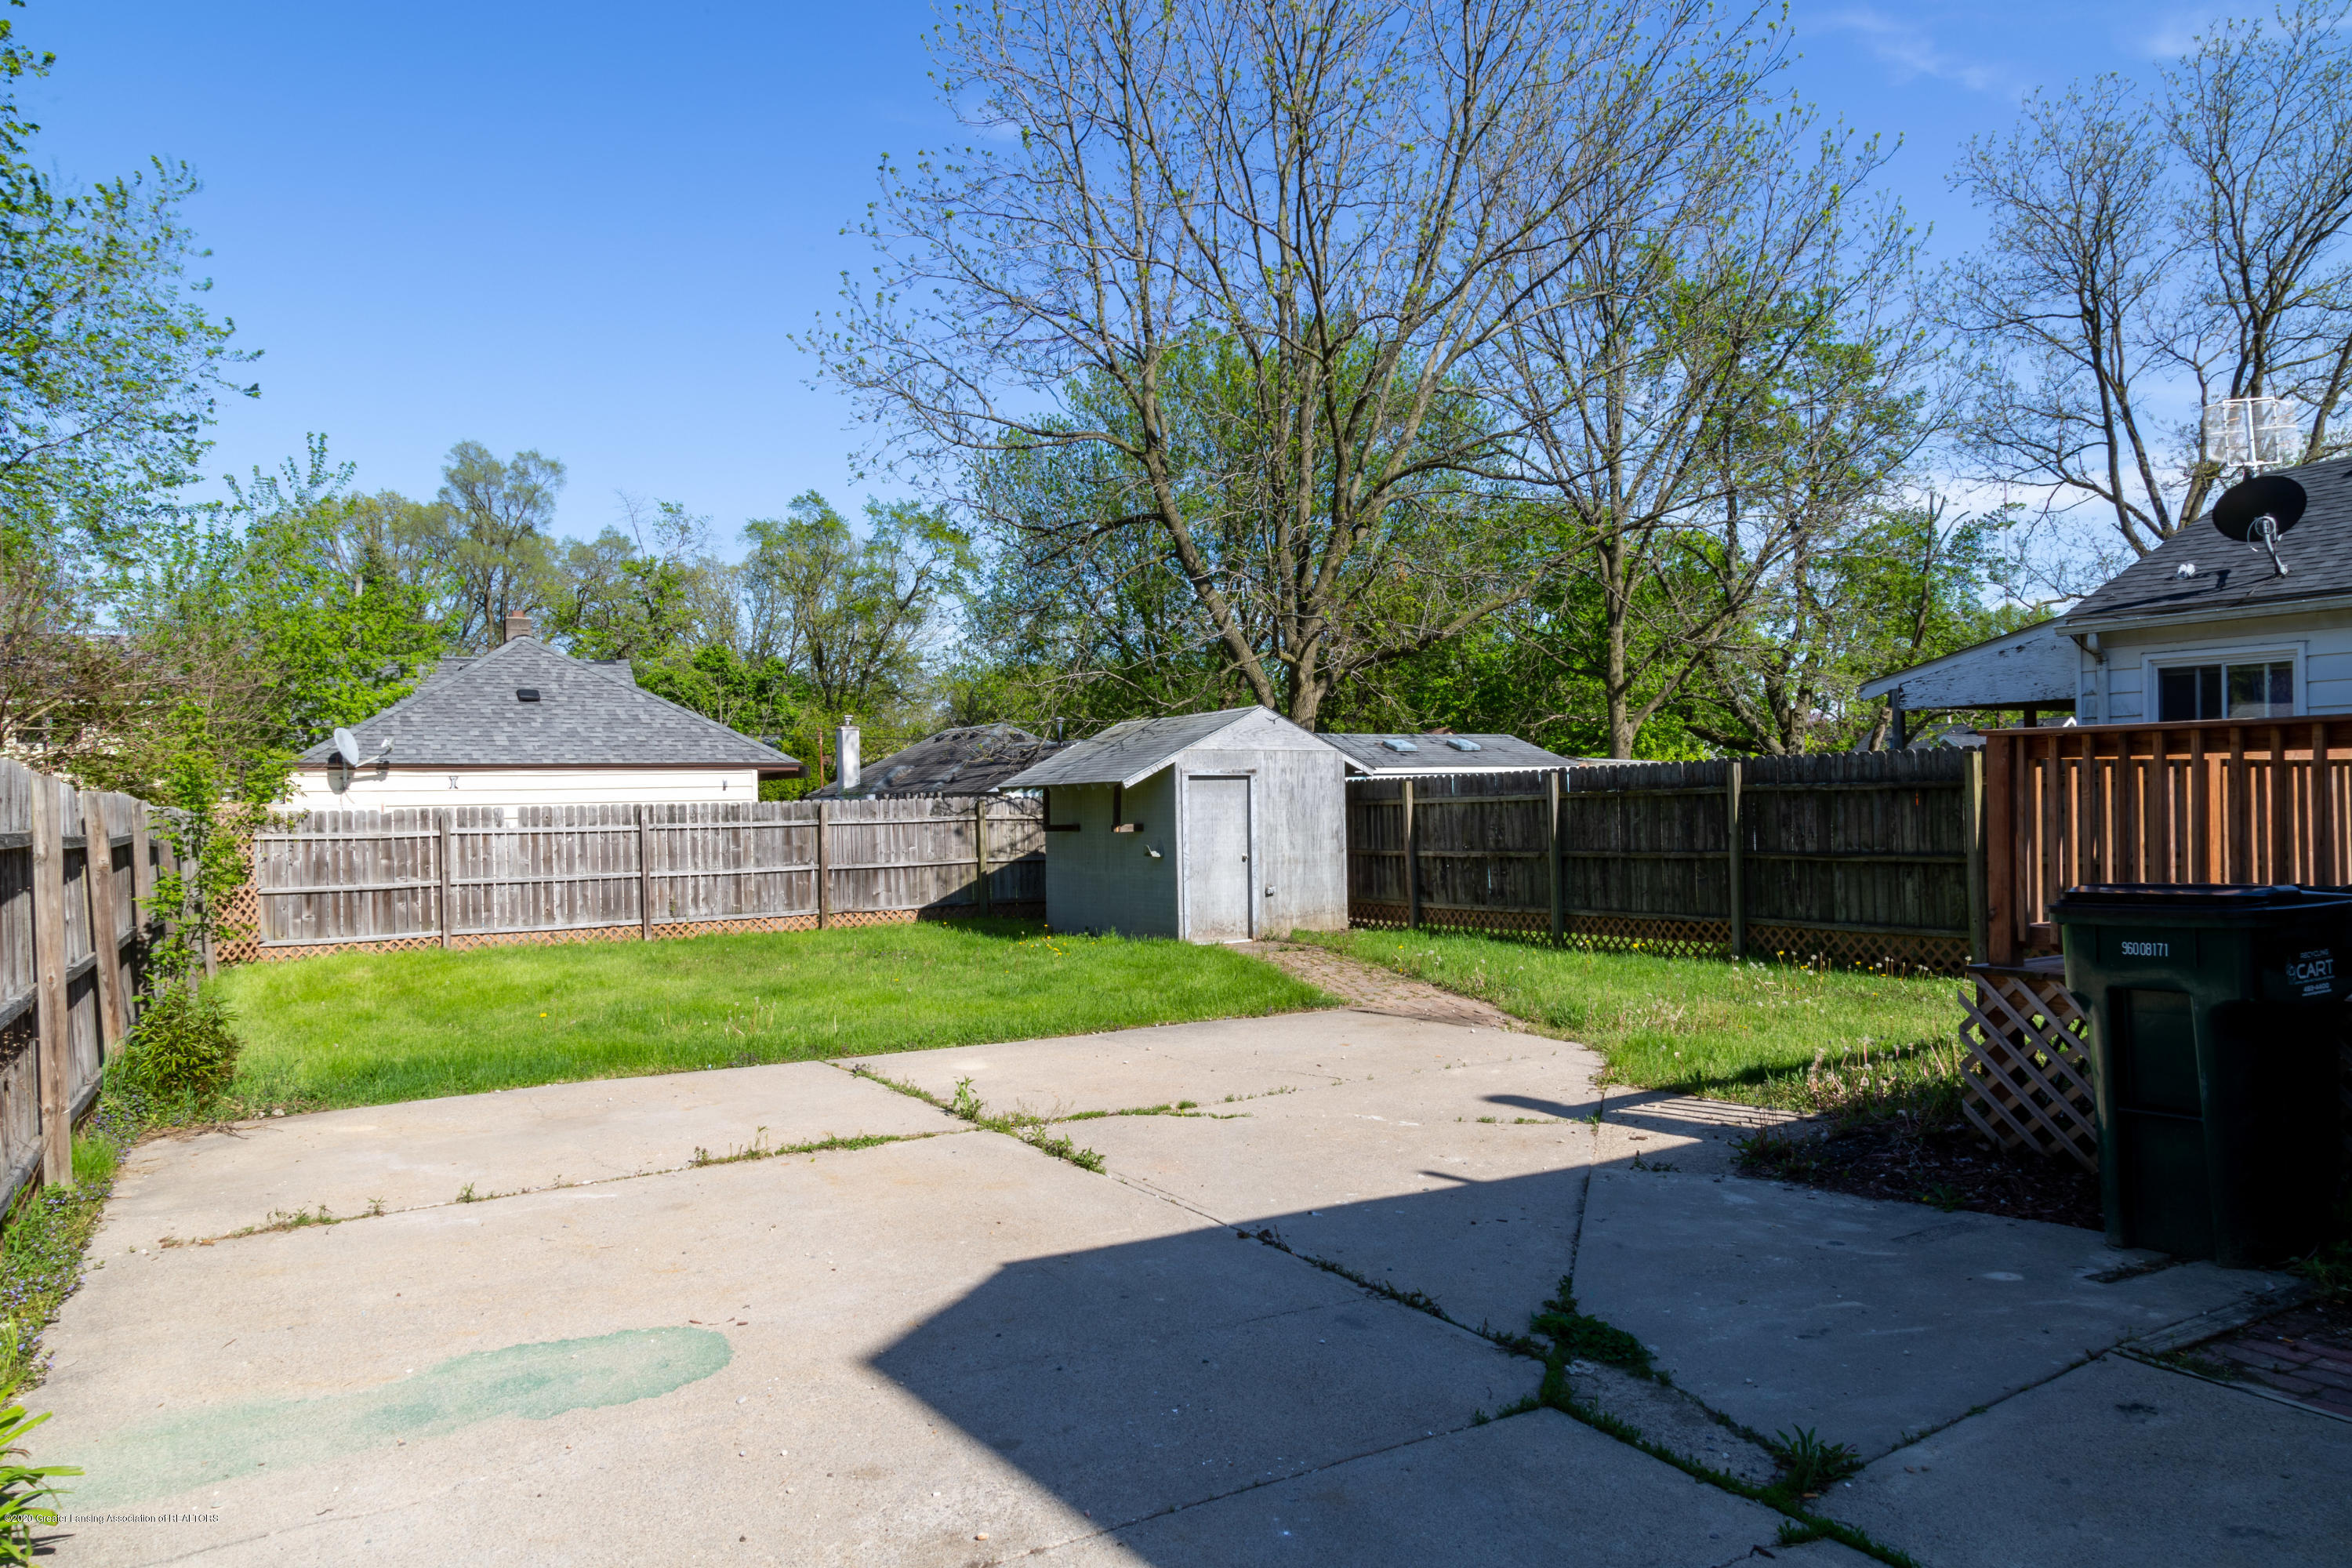 3623 Burchfield Dr - 20200520-942A6604-HDR - 22